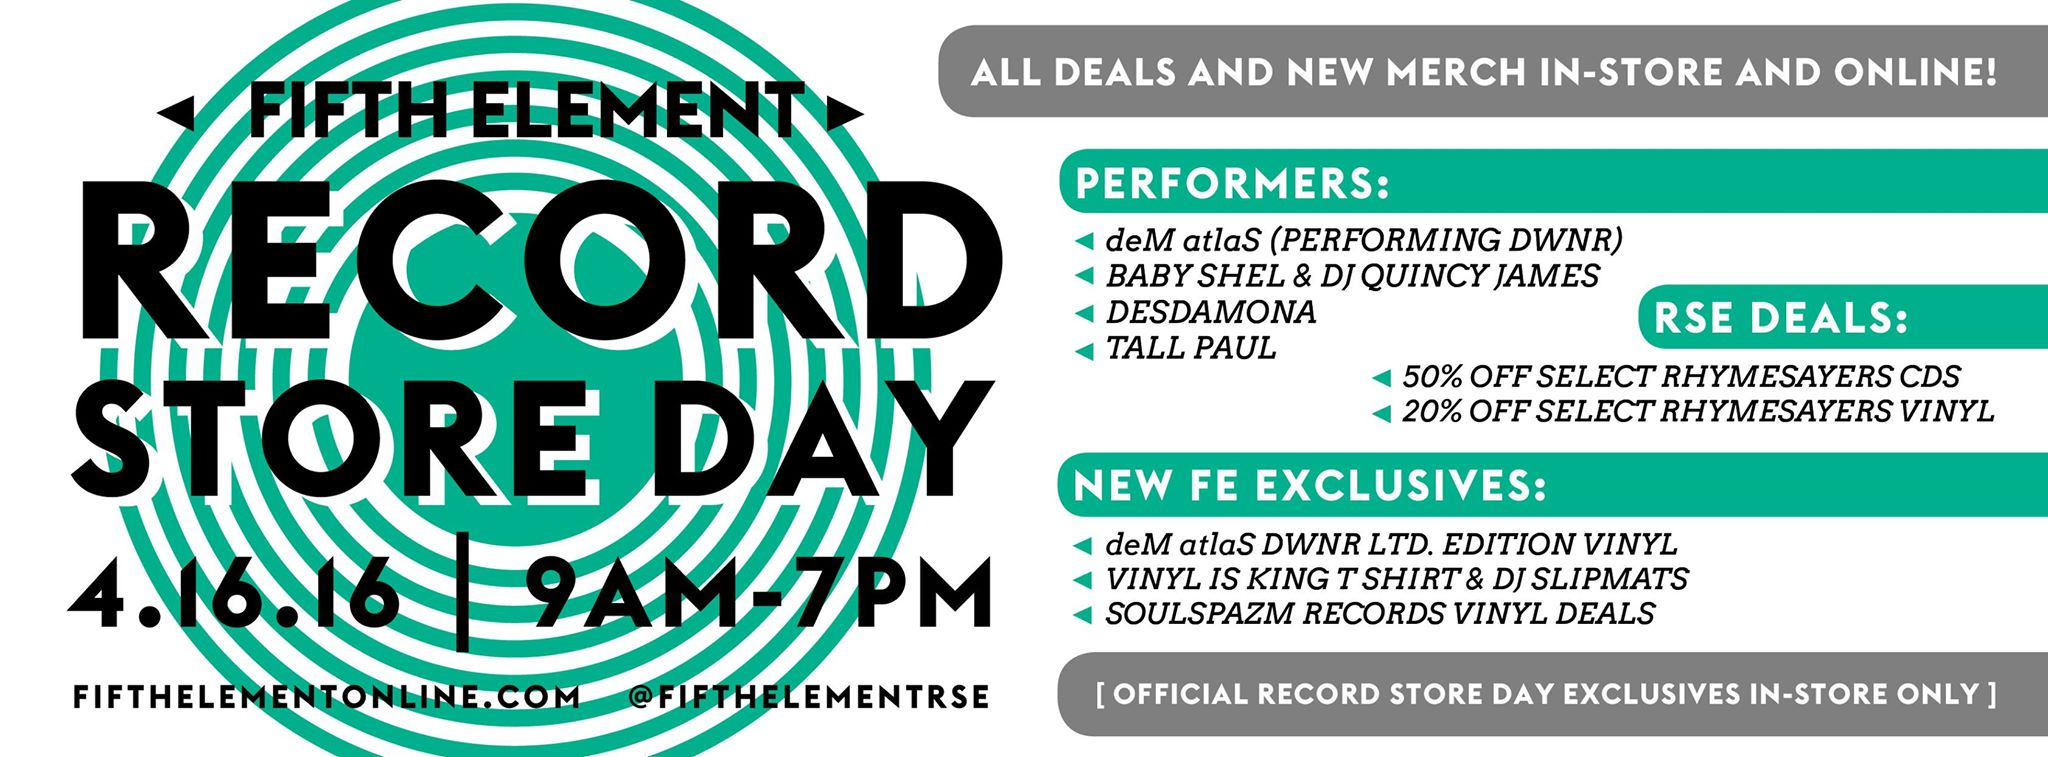 Fifth Element/Rhymesayers Record Store Day Event 2016 at